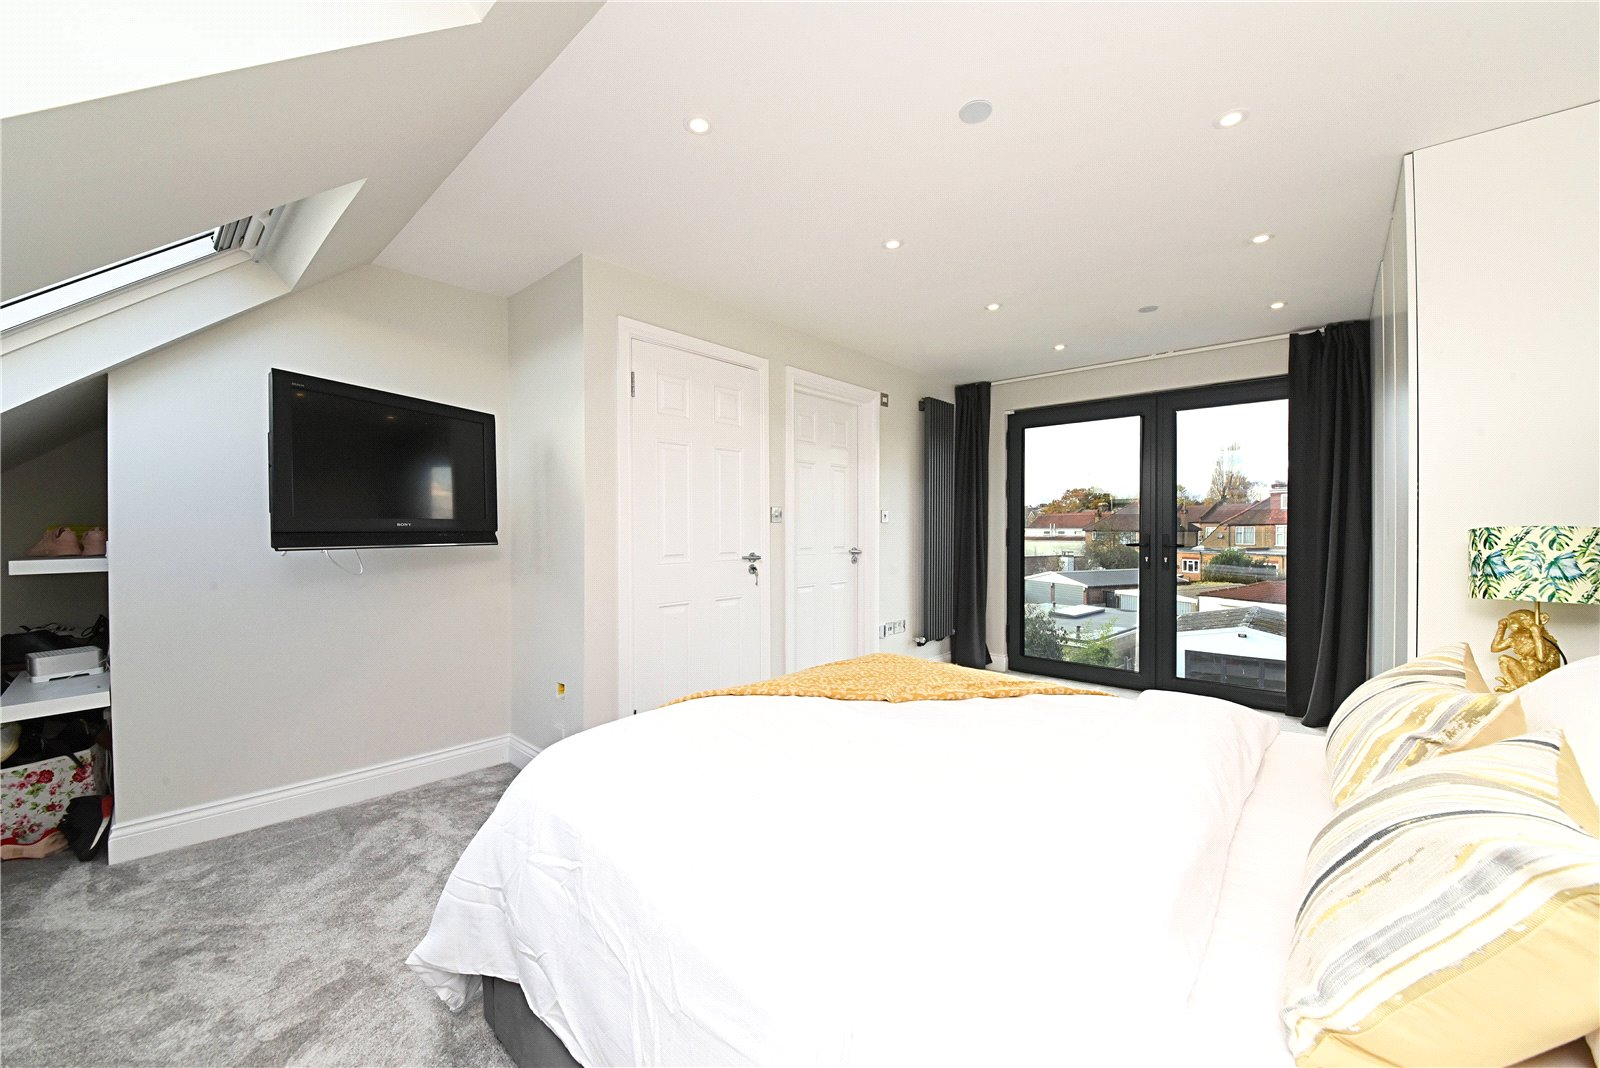 4 bed house for sale in Friern Barnet, N11 1HN 11